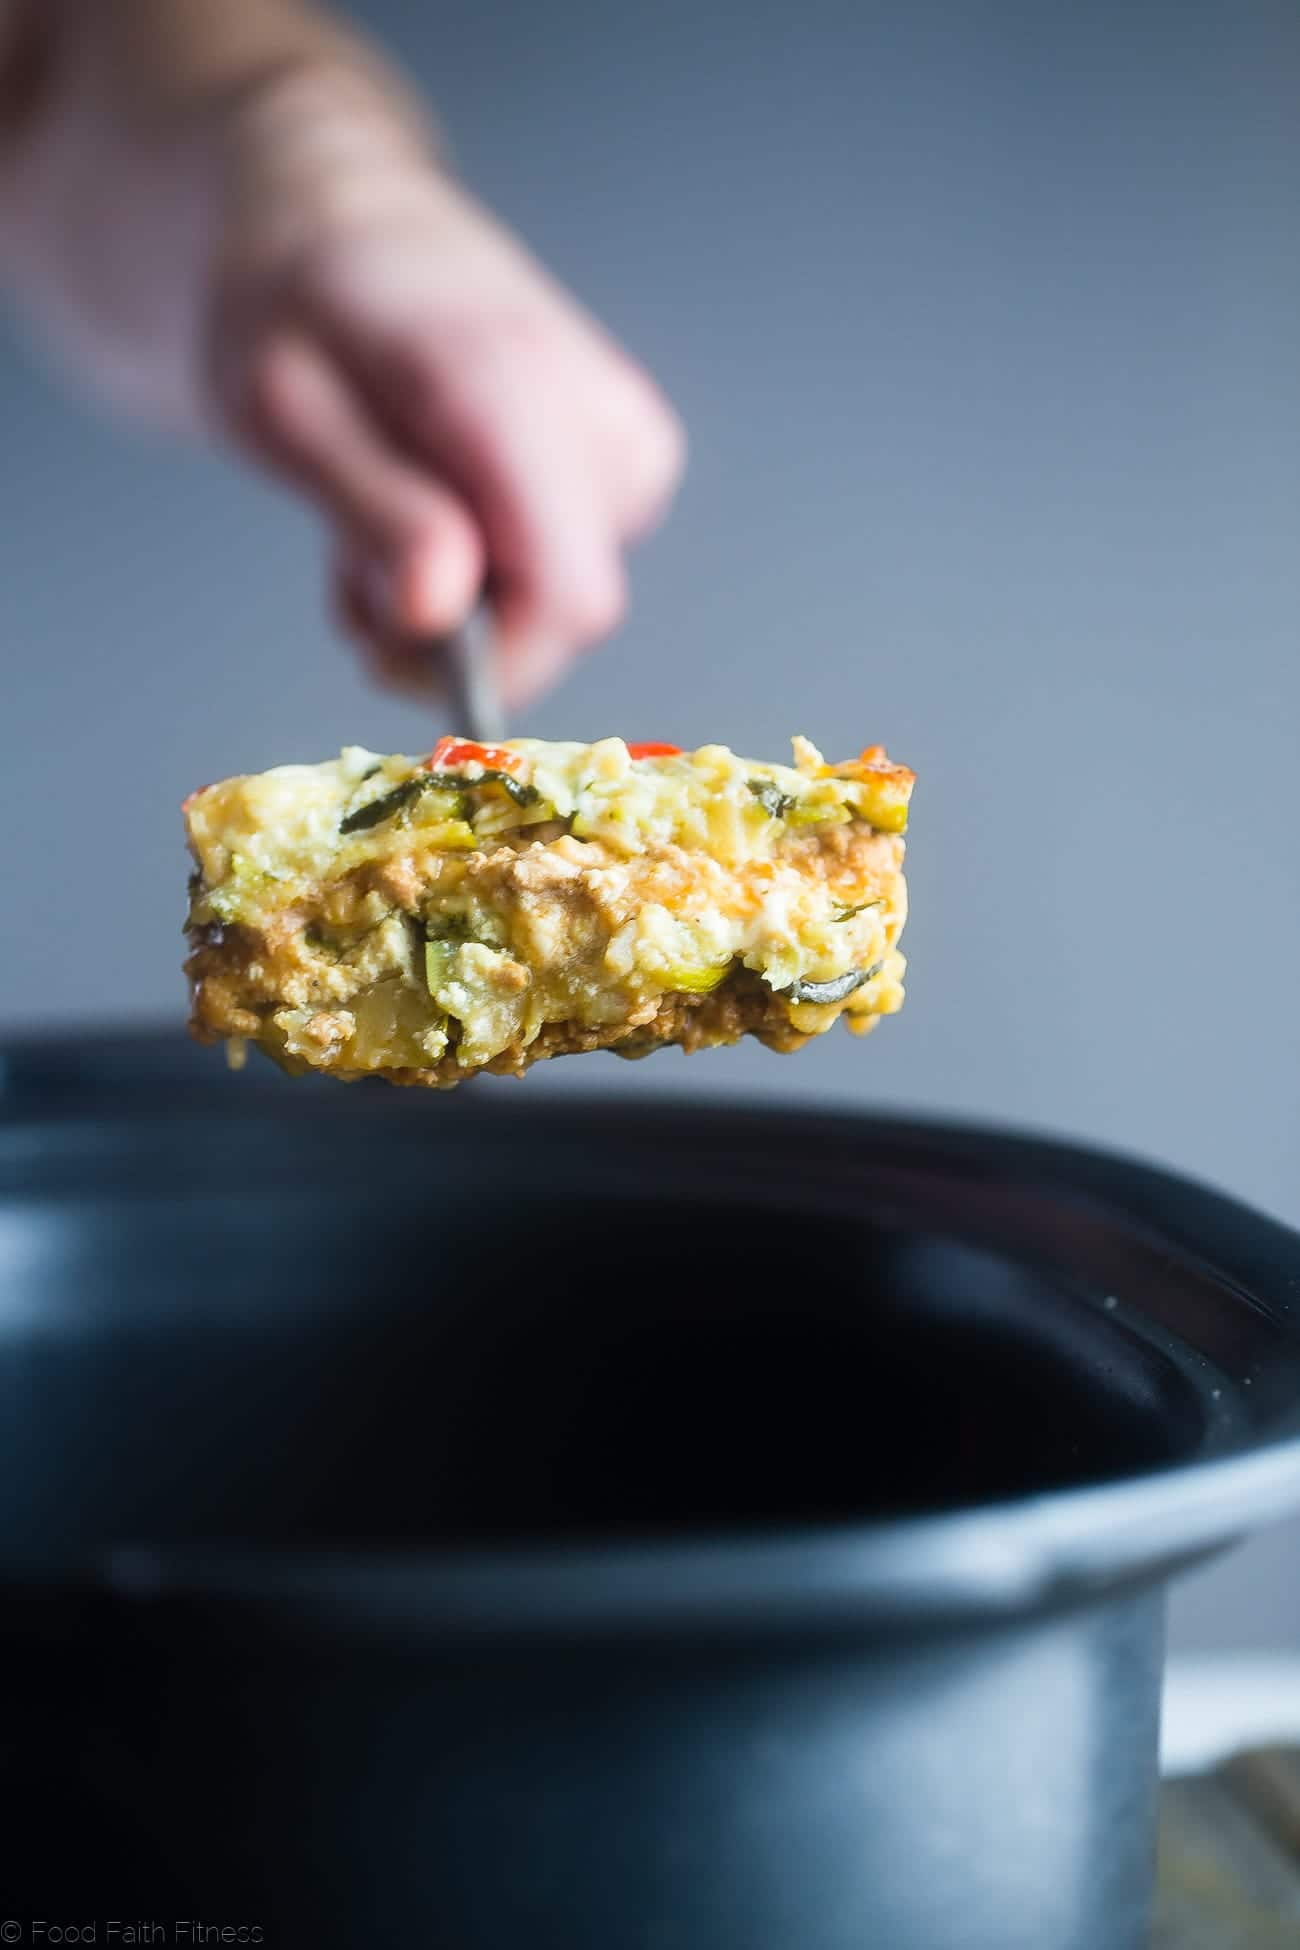 Thai Slow Cooker Zucchini Lasagna - This freezer-friendly zucchini lasagna is made in the slow cooker, and has a Thai peanut twist! It's a healthy, low carb and gluten free weeknight meal that the family will love! | Foodfaithfitness.com | @FoodFaithFit